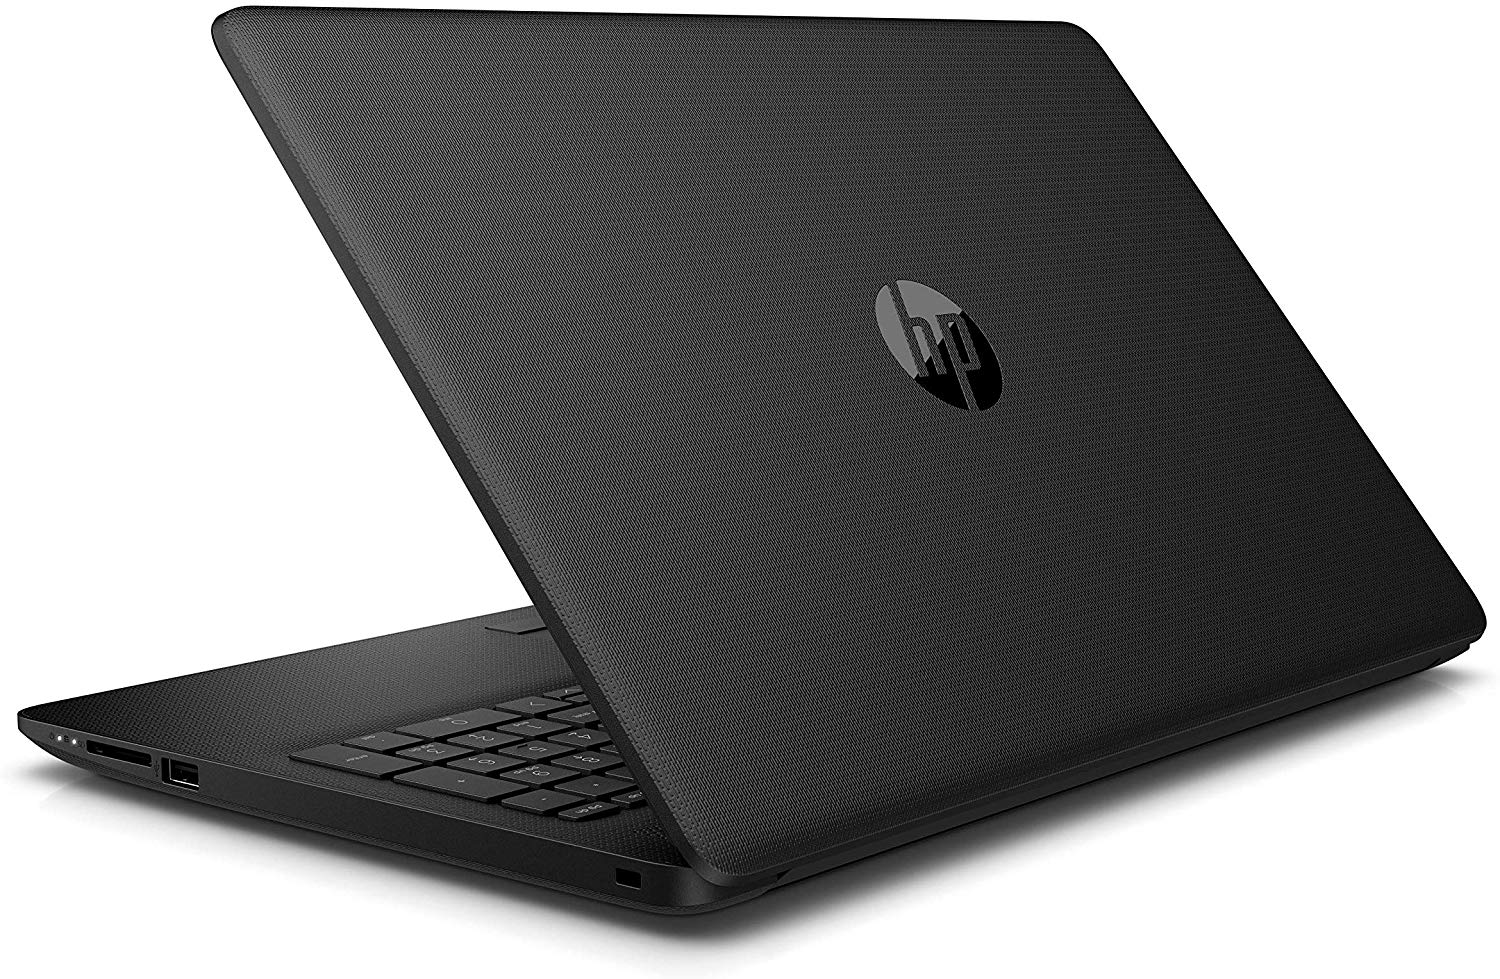 HP 15 15-DA1074TX 15.6-inch Laptop (8th Gen Core I5-8265U/8GB/1TB HDD/Windows 10, Home/NVIDIA GeForce MX110 Graphics), Jet Black By HP